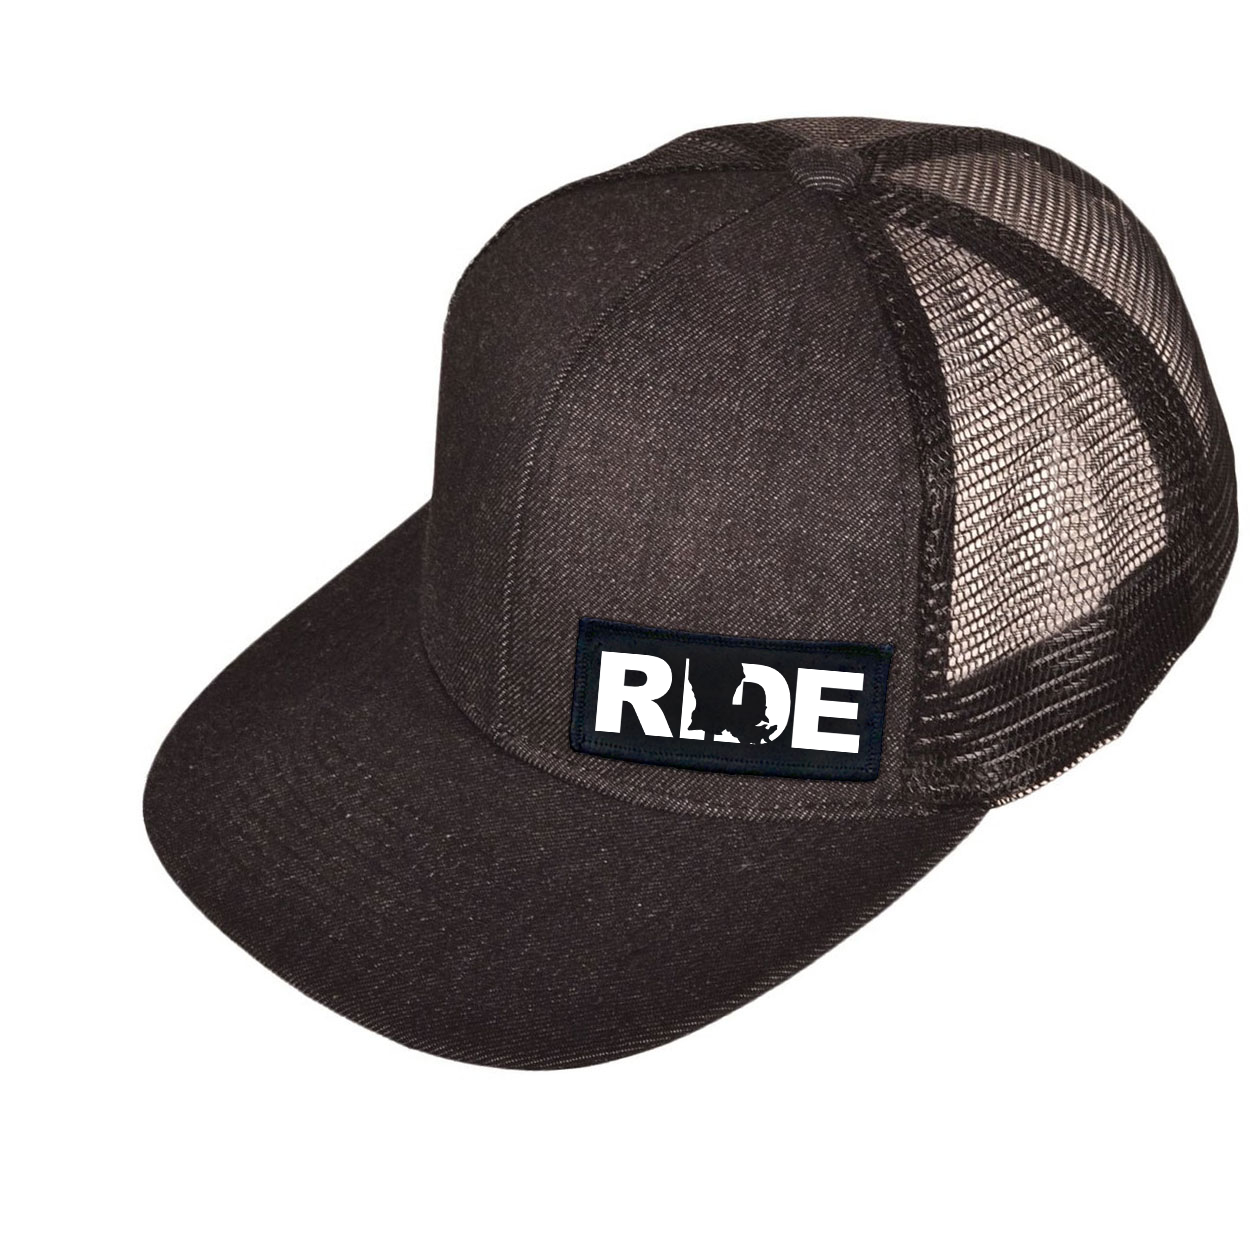 Ride Louisiana Night Out Woven Patch Snapback Flat Brim Hat Black Denim (White Logo)